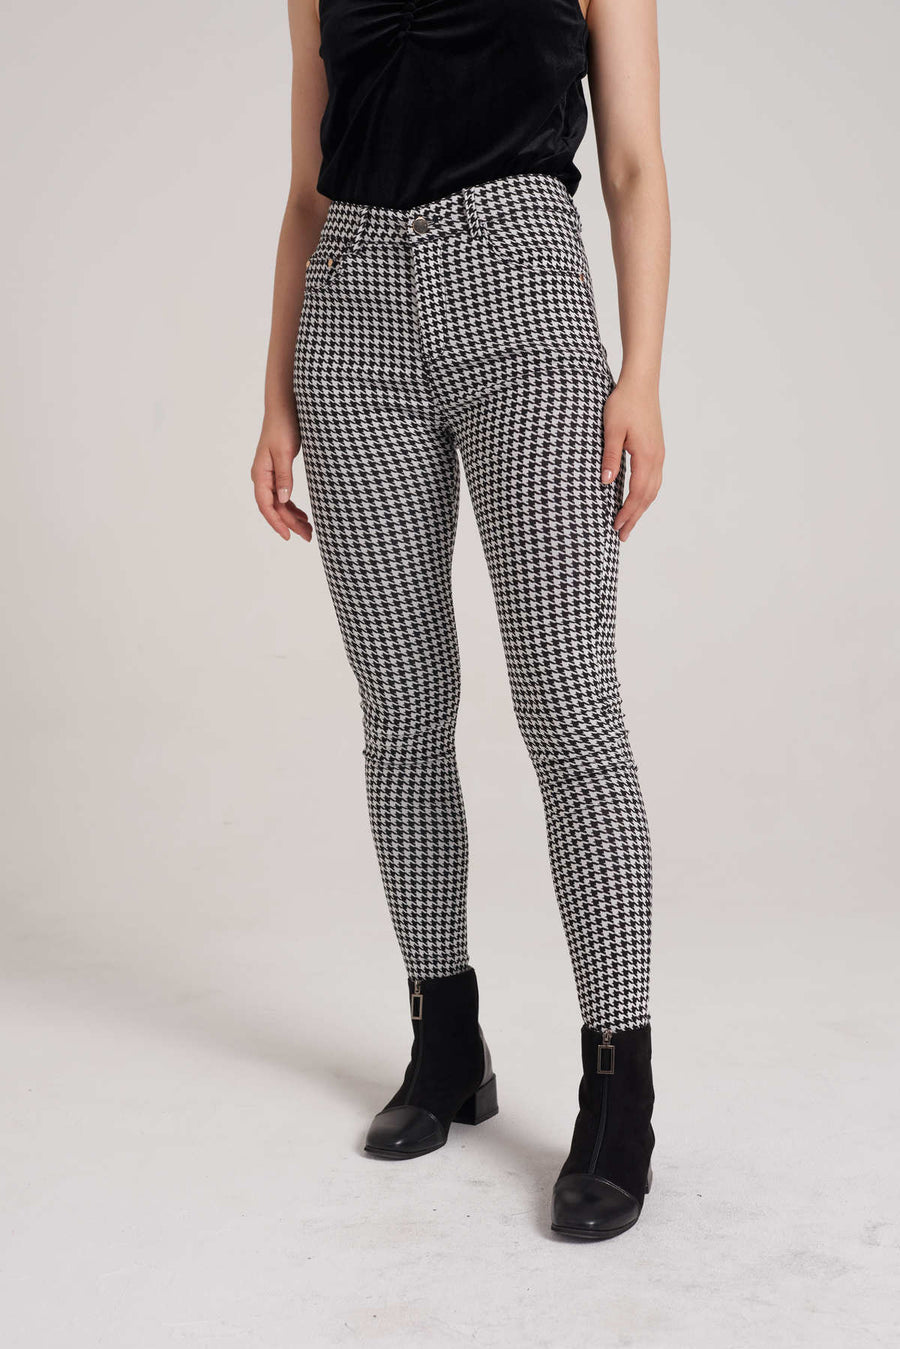 Mantra Pakistan Jeggings Mid houndstooth | BOTTOMS